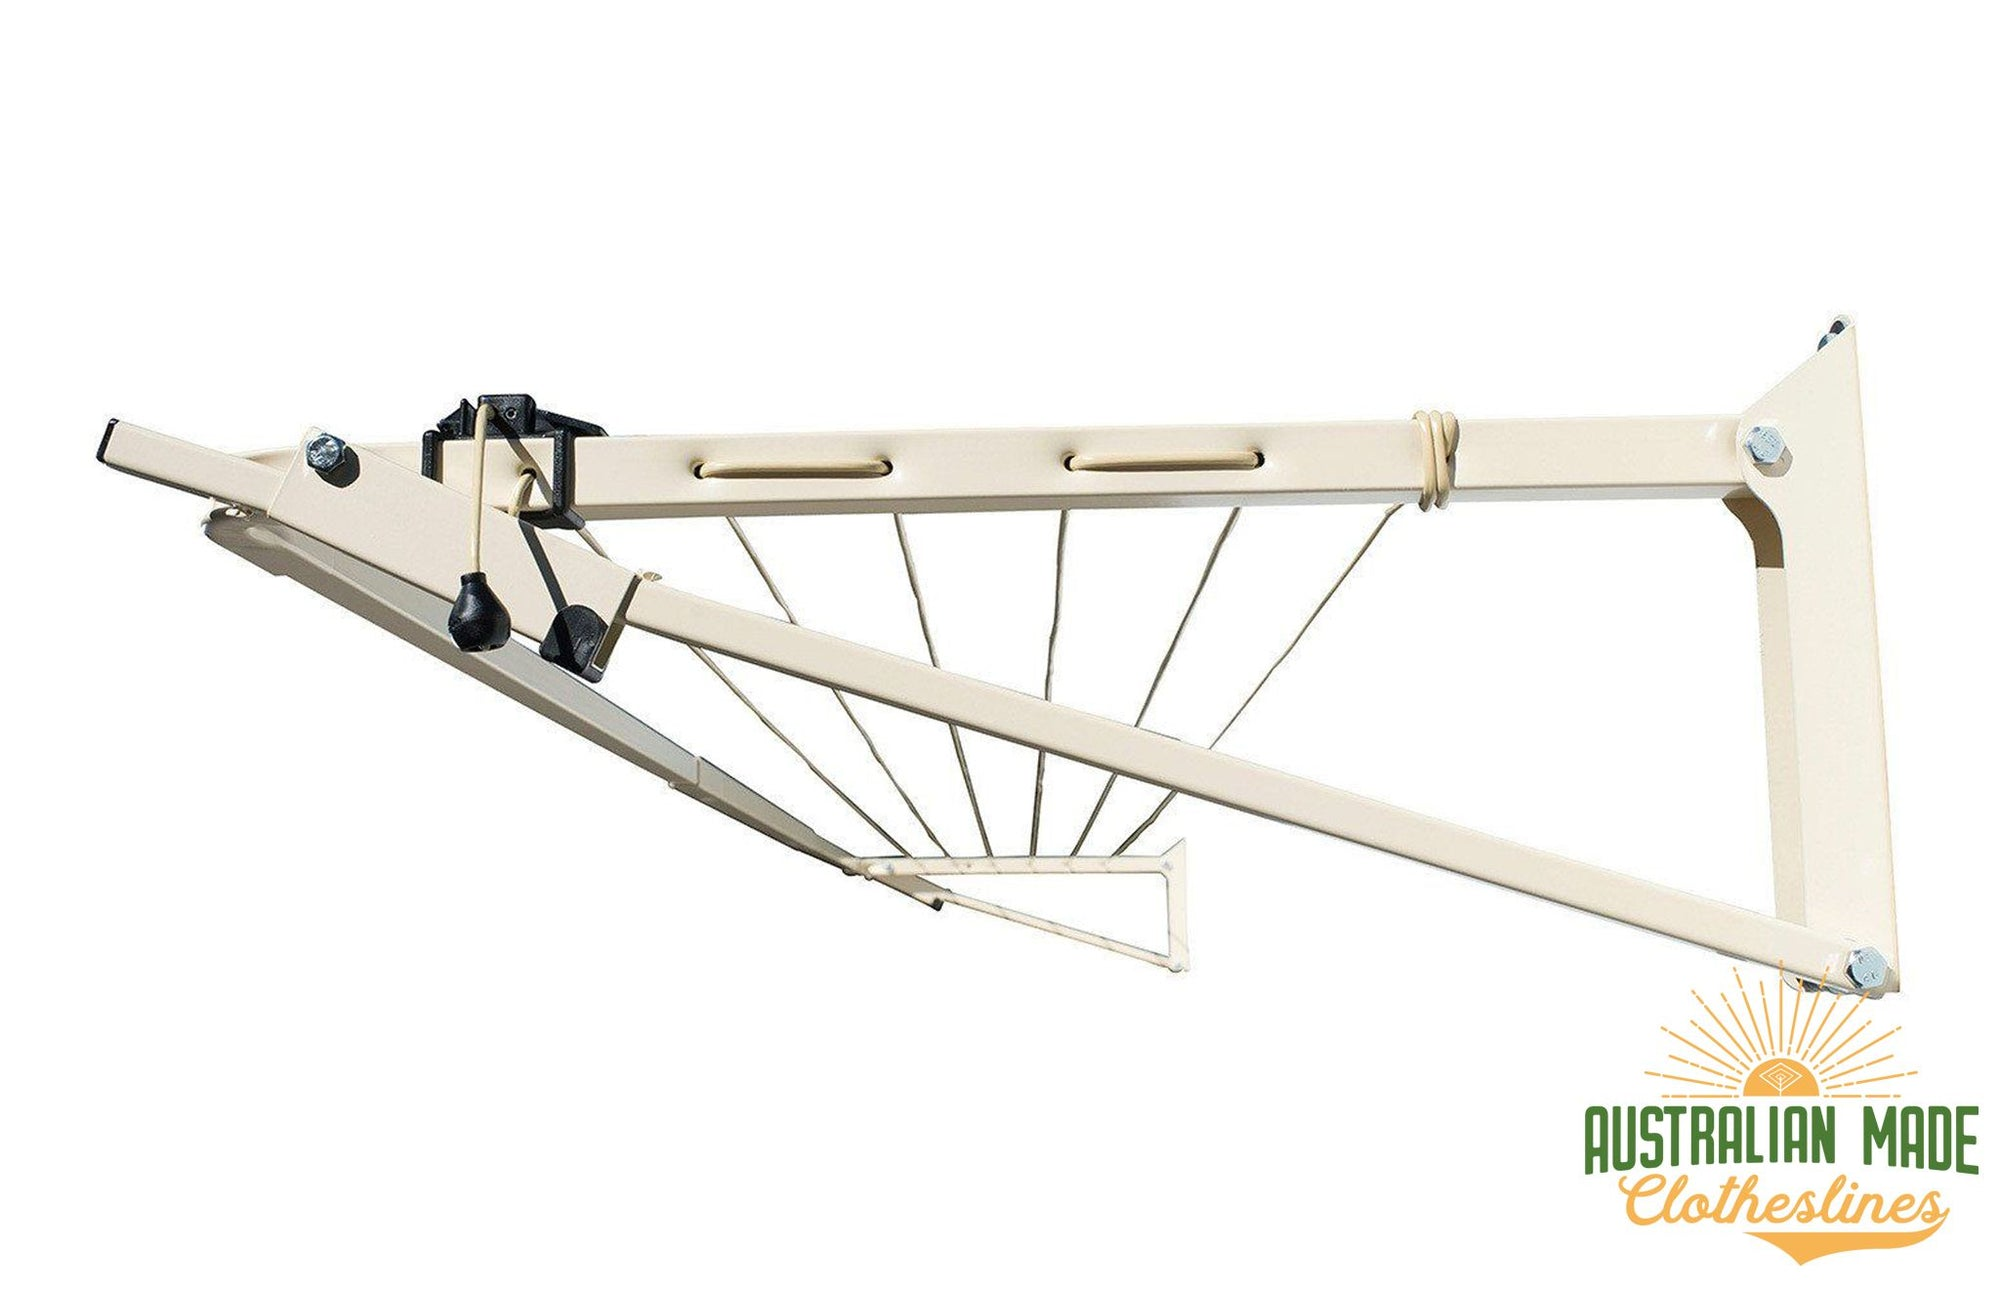 Austral Slenderline 20 Clothesline - Classic Cream Right Side View - Australian Made Clotheslines